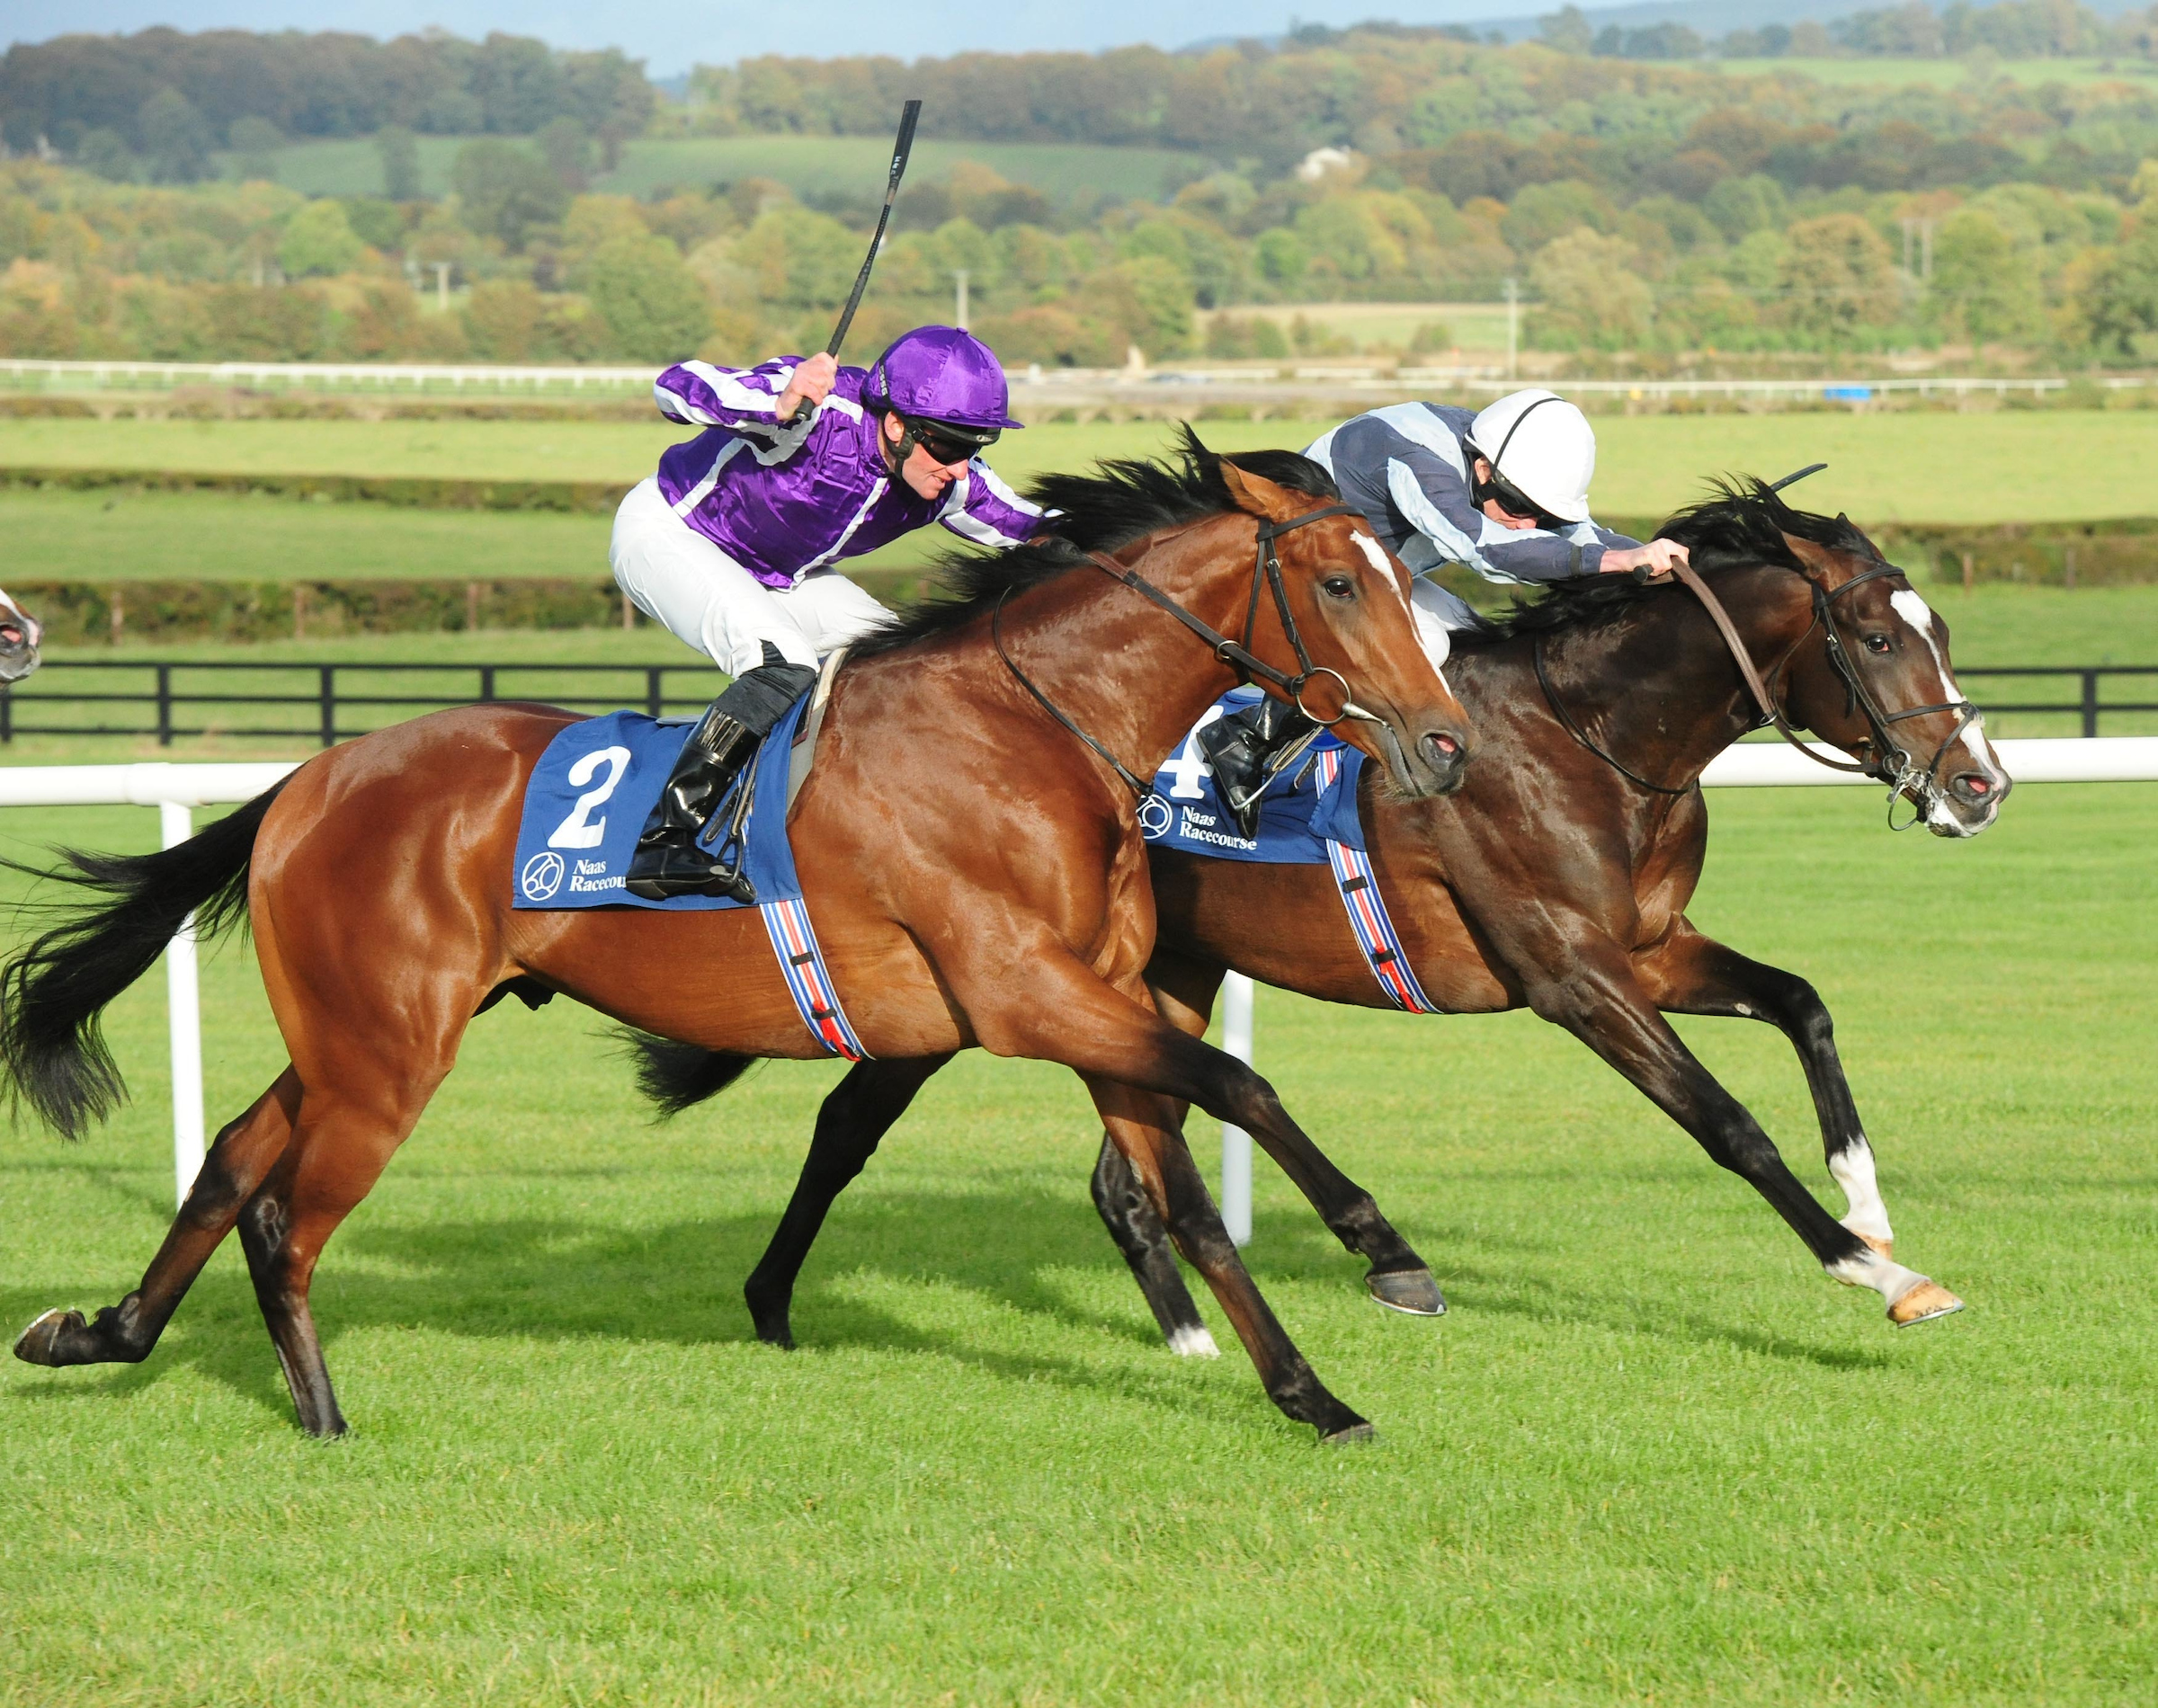 Japan in winning action at Naas